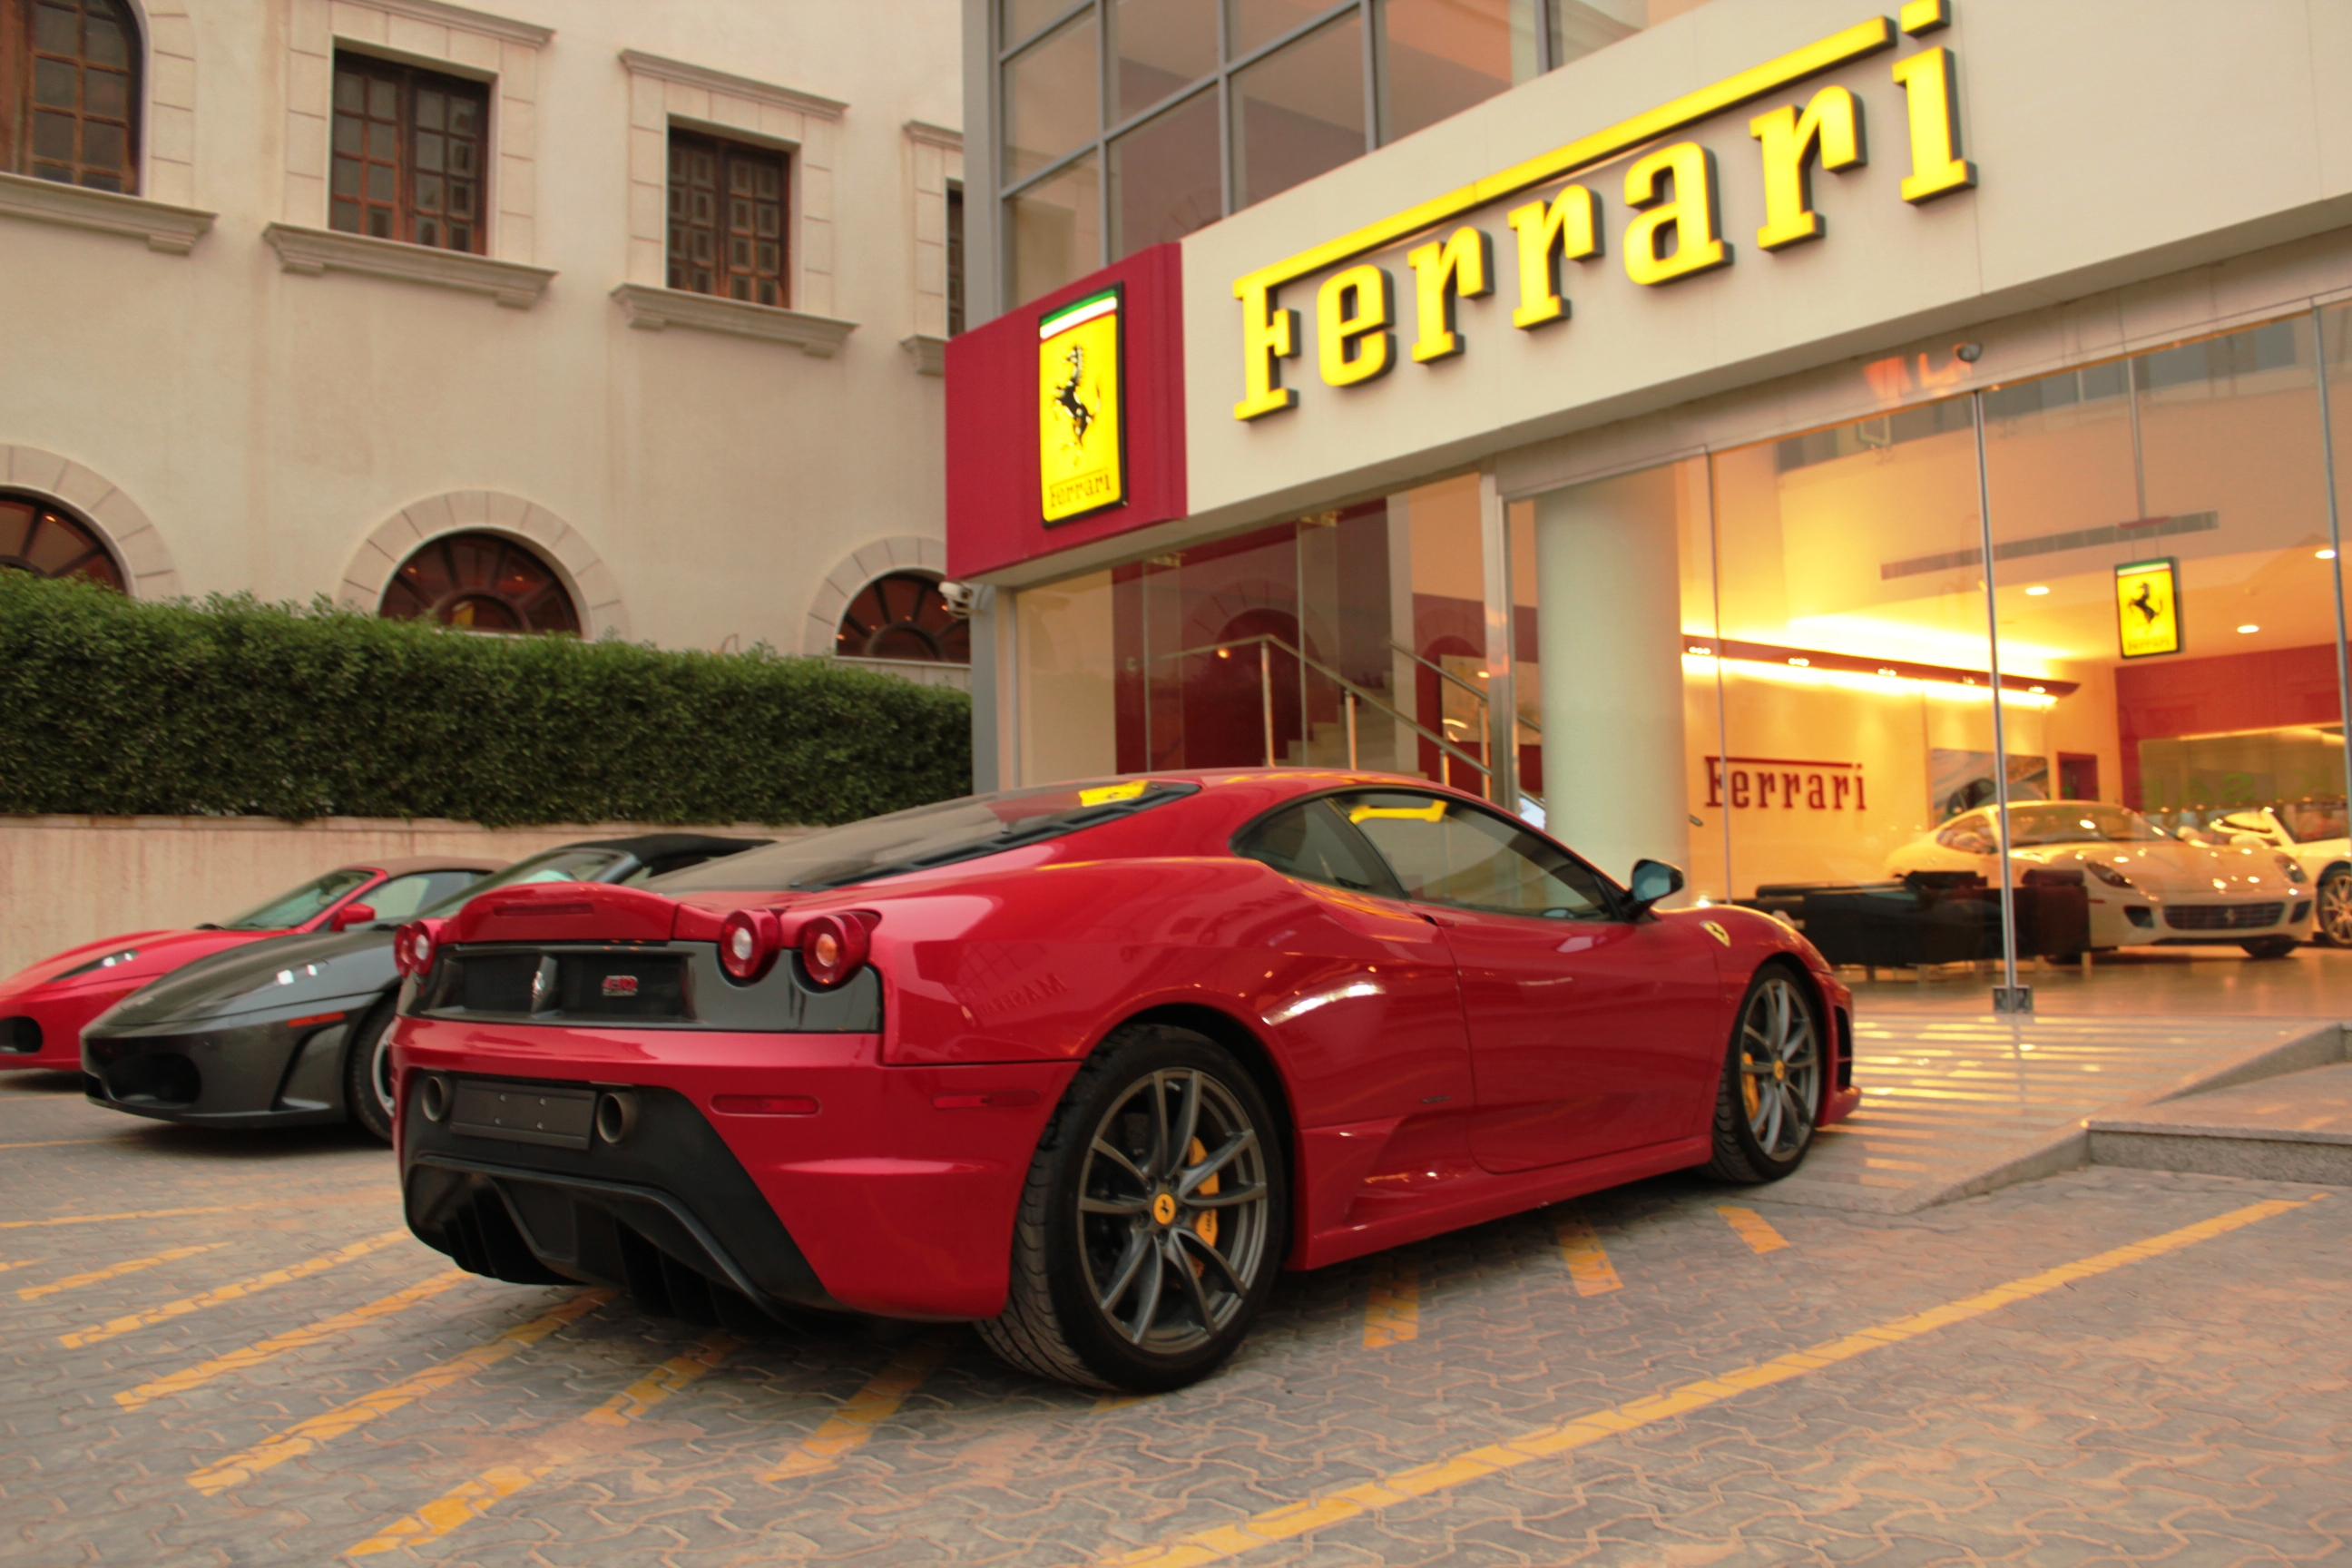 file ferrari 430 scuderia in riyadh ksa jpg wikimedia commons. Black Bedroom Furniture Sets. Home Design Ideas